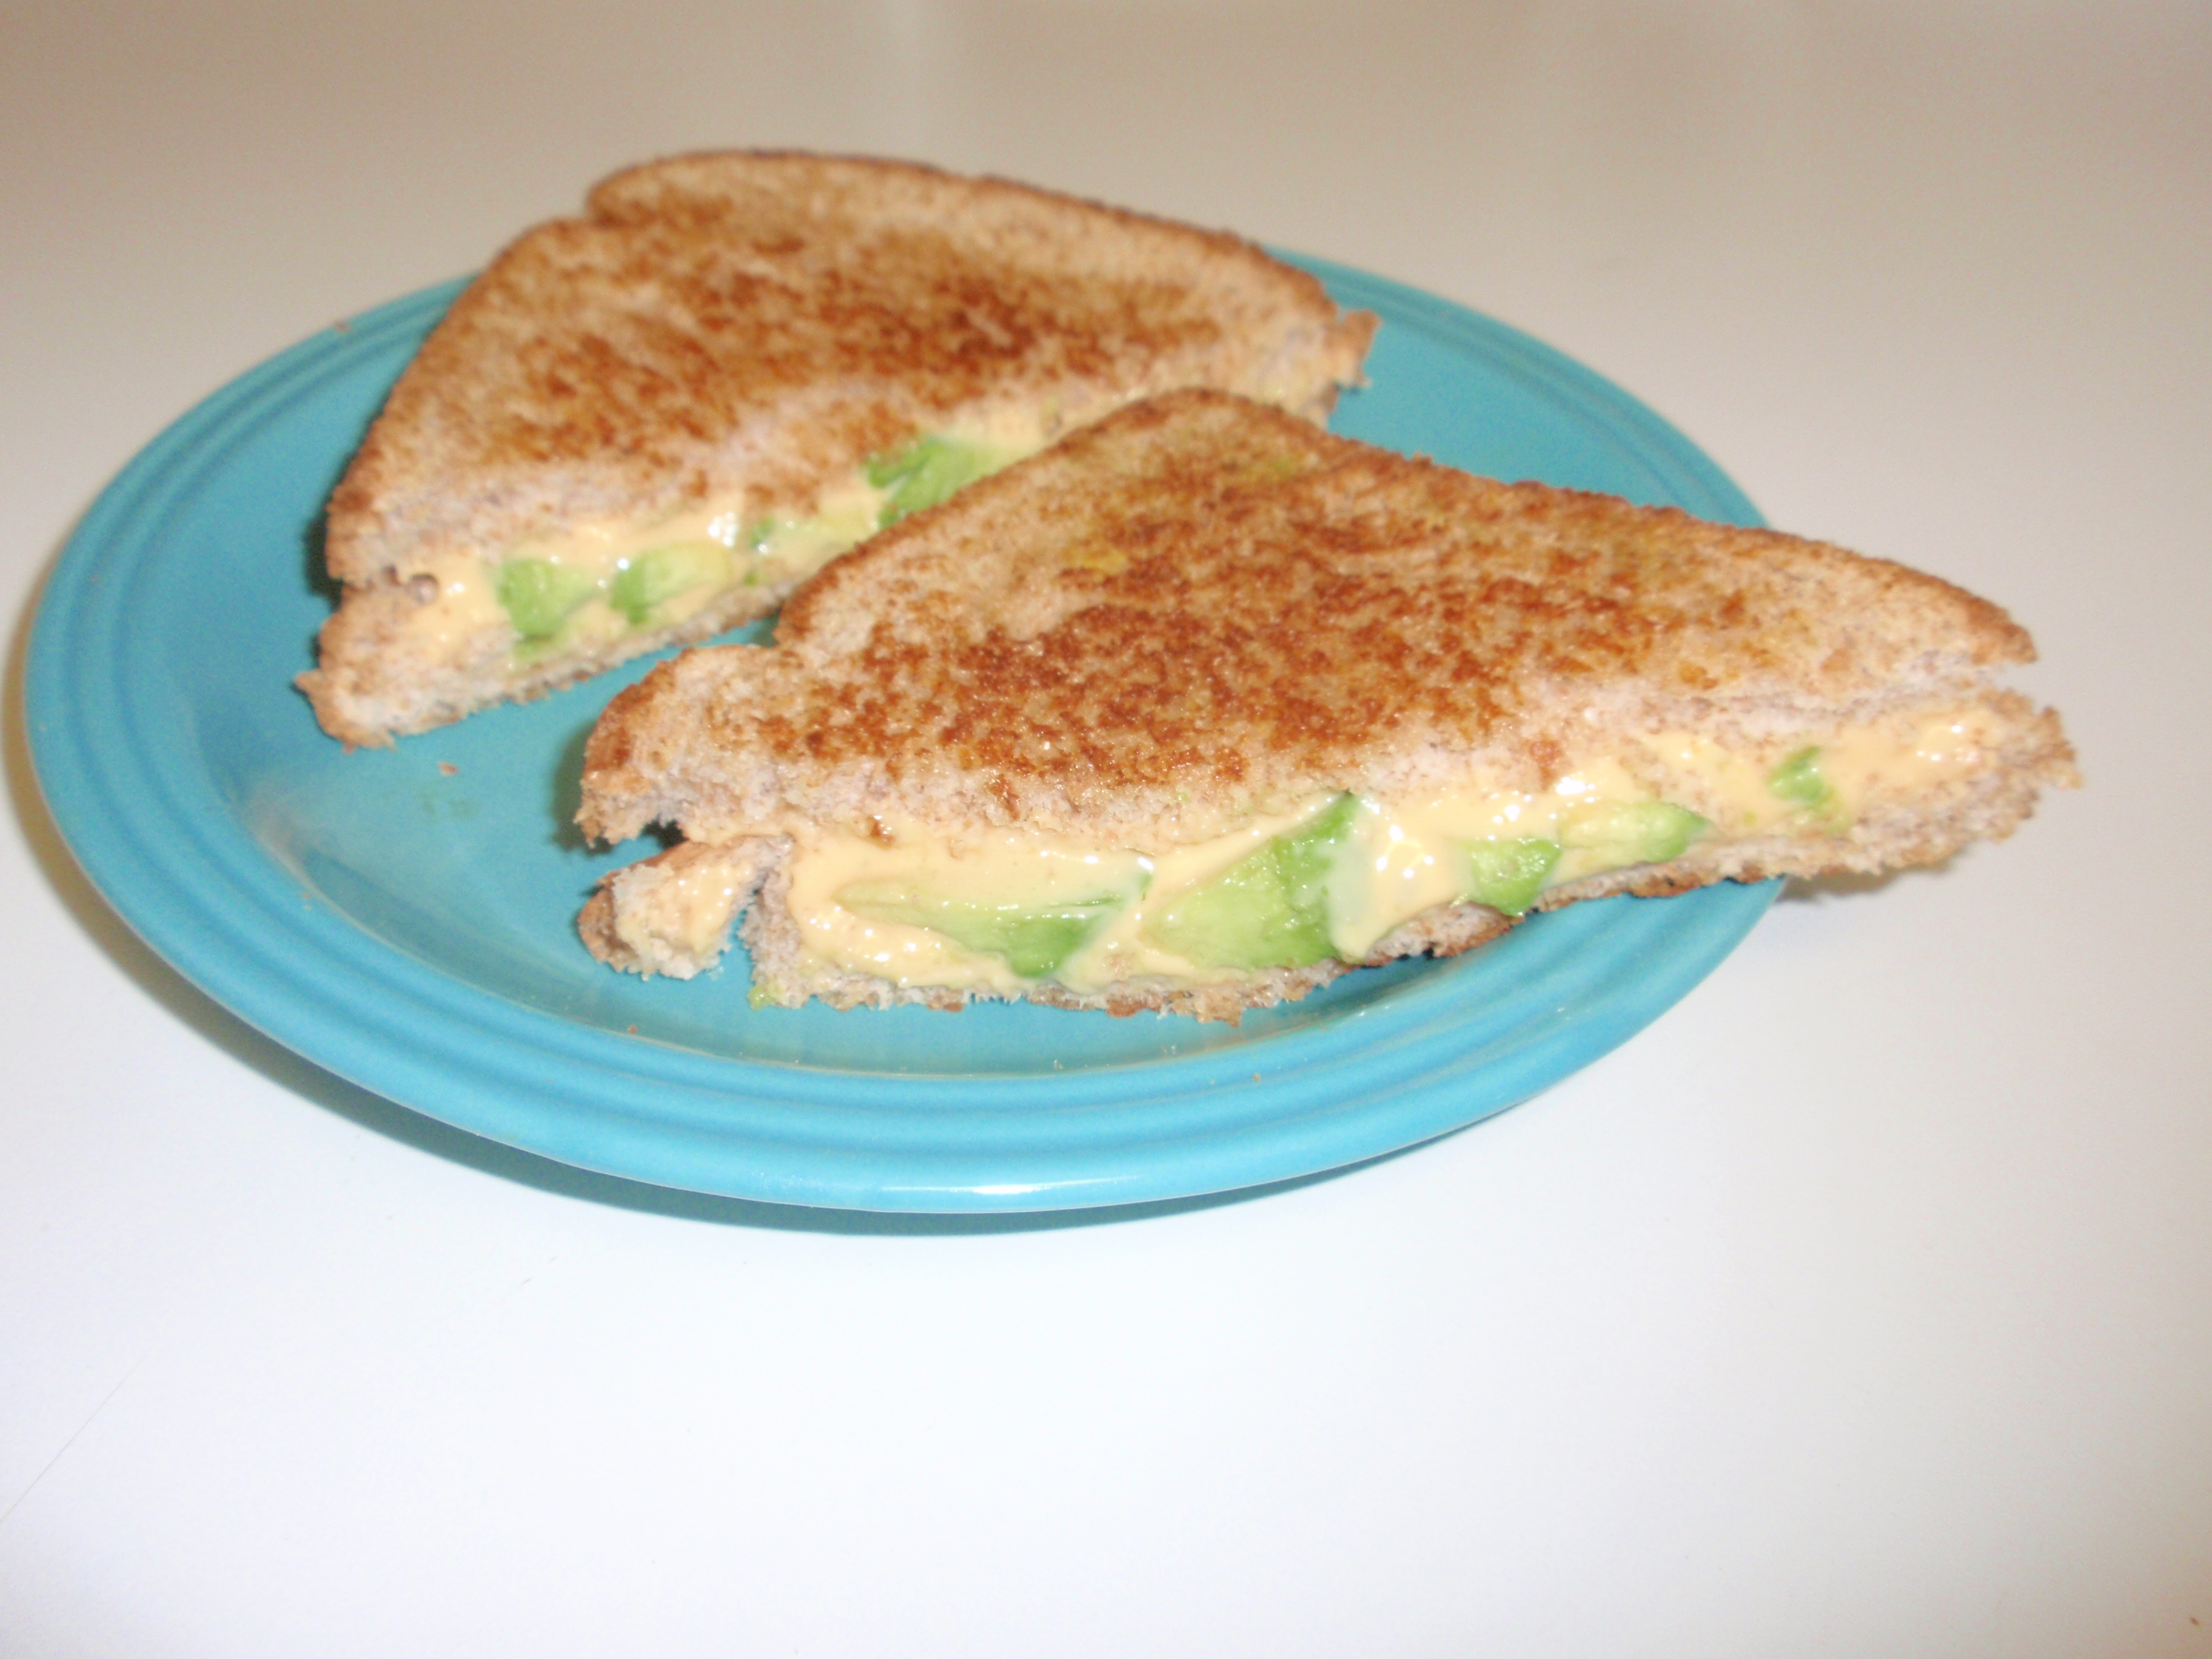 Picture of Avocado Grilled Cheese Sandwich